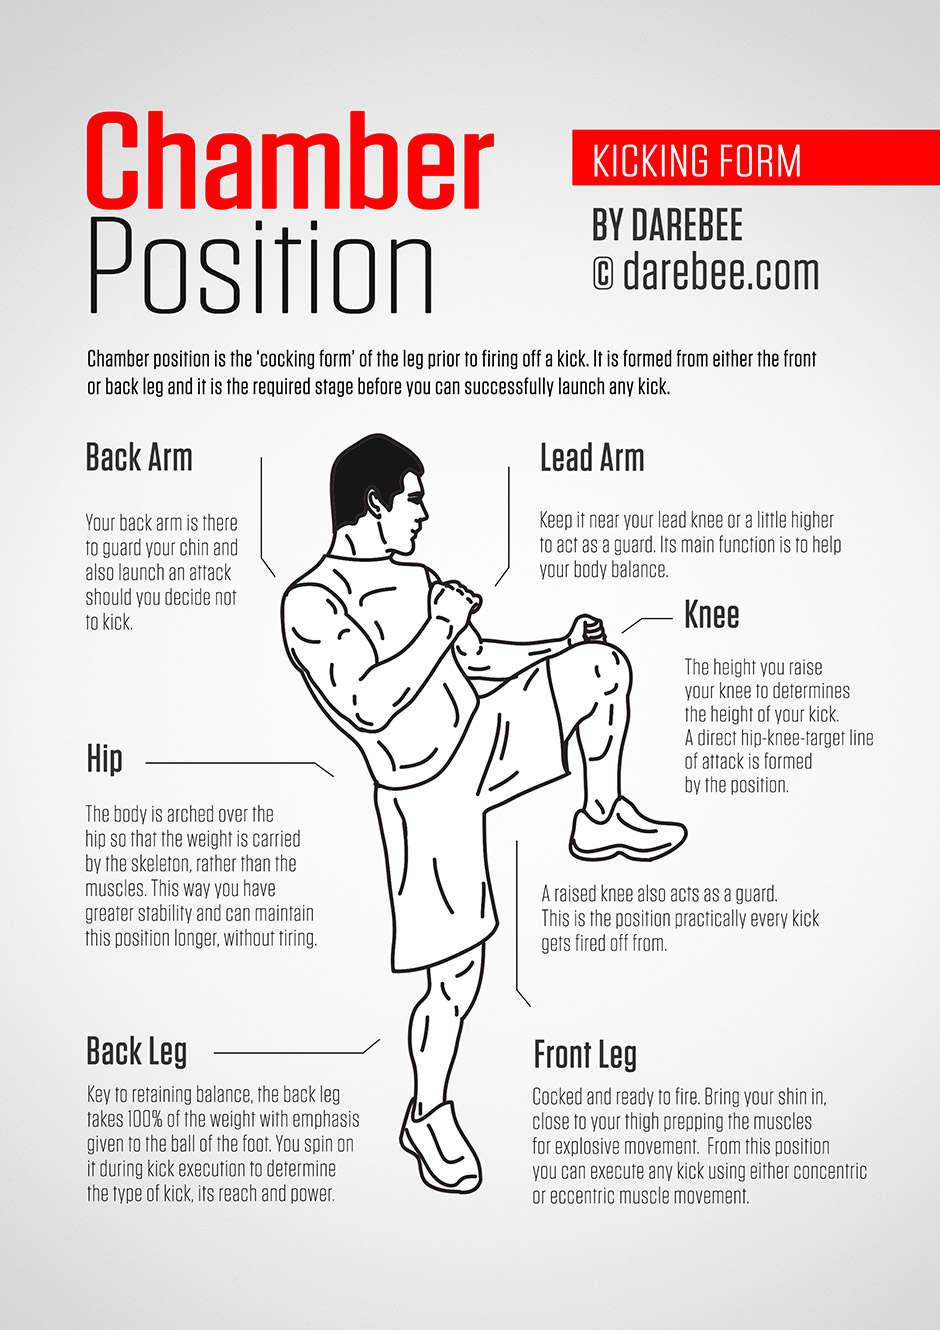 Guides to Kicks - Chamber Position